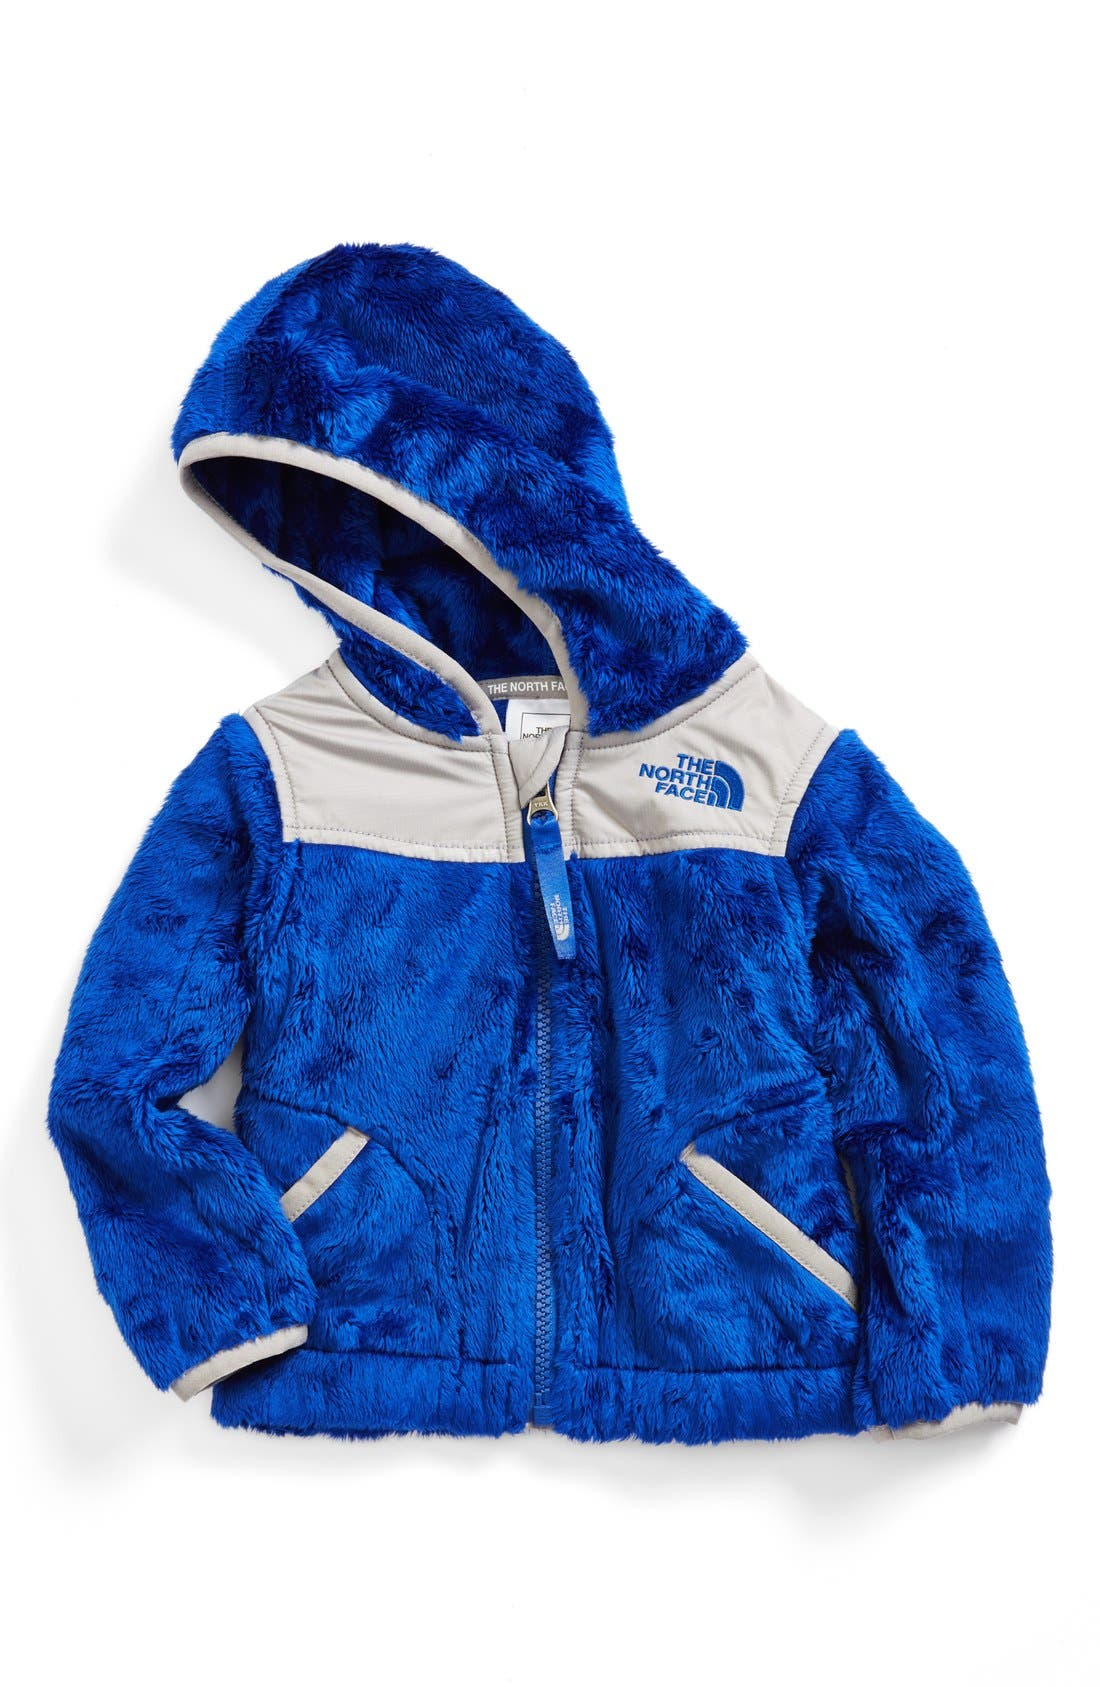 Alternate Image 1 Selected - The North Face 'Oso' Fleece Hooded Jacket (Baby Boys)